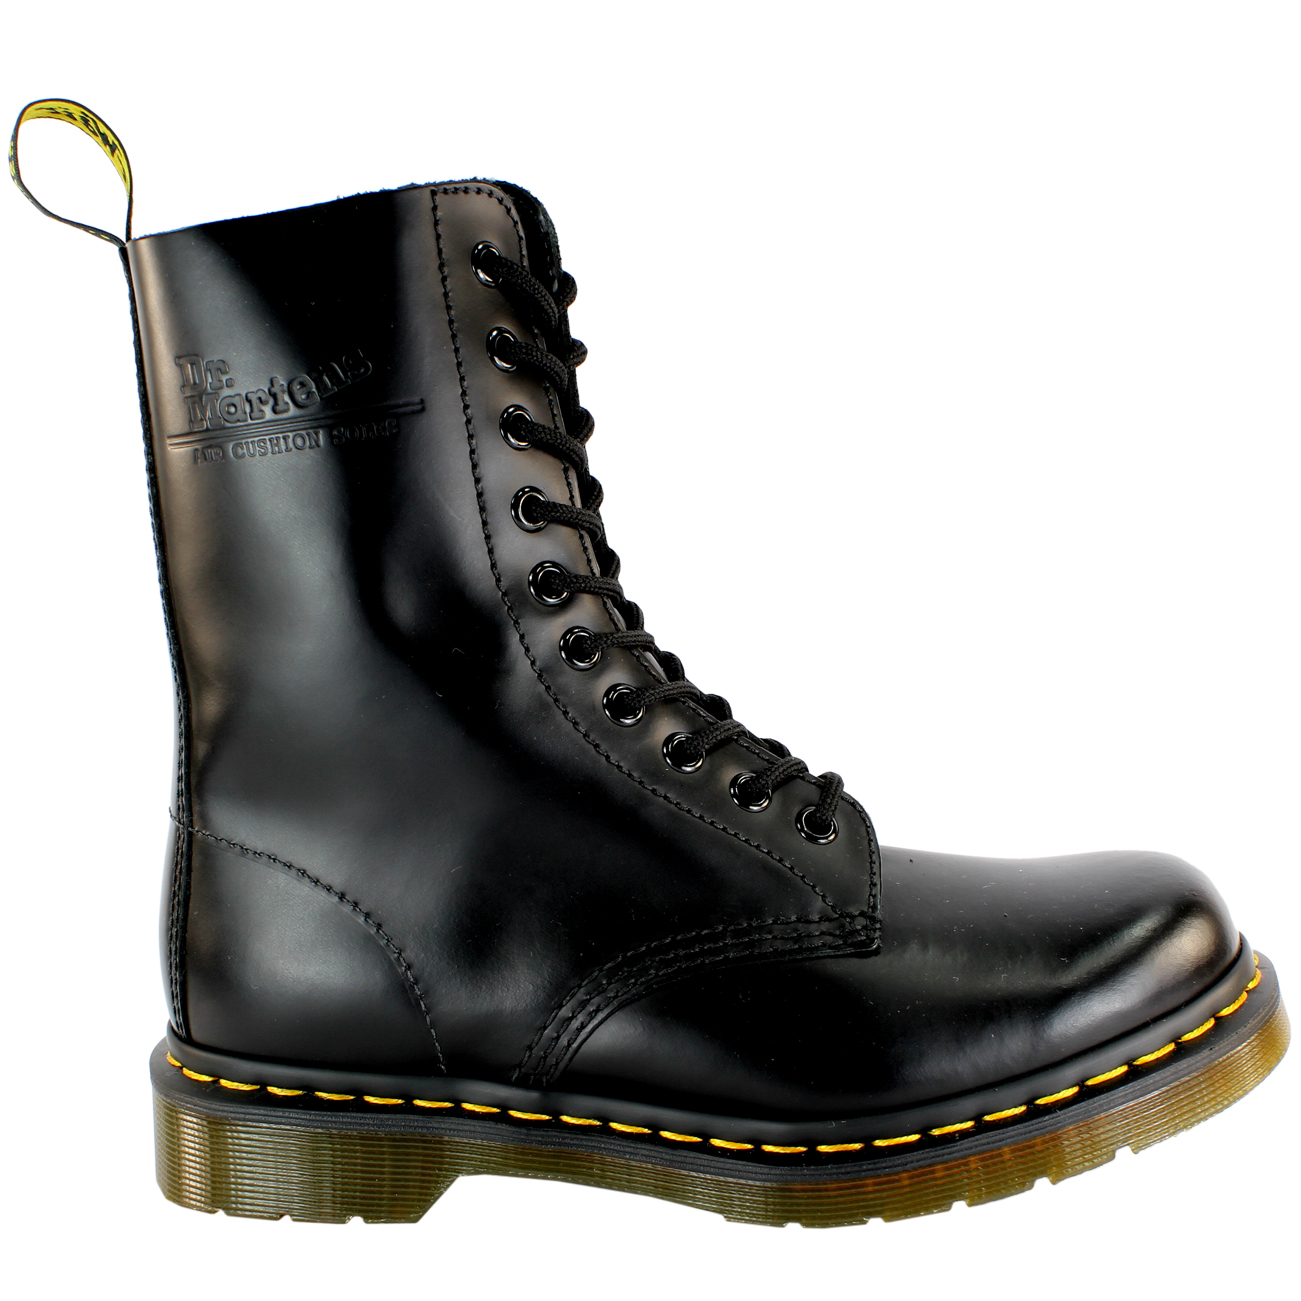 8a02d7d77112 Mens Dr Martens Classic 1490 Black Vintage Leather Lace Up Ankle Boot All  Sizes